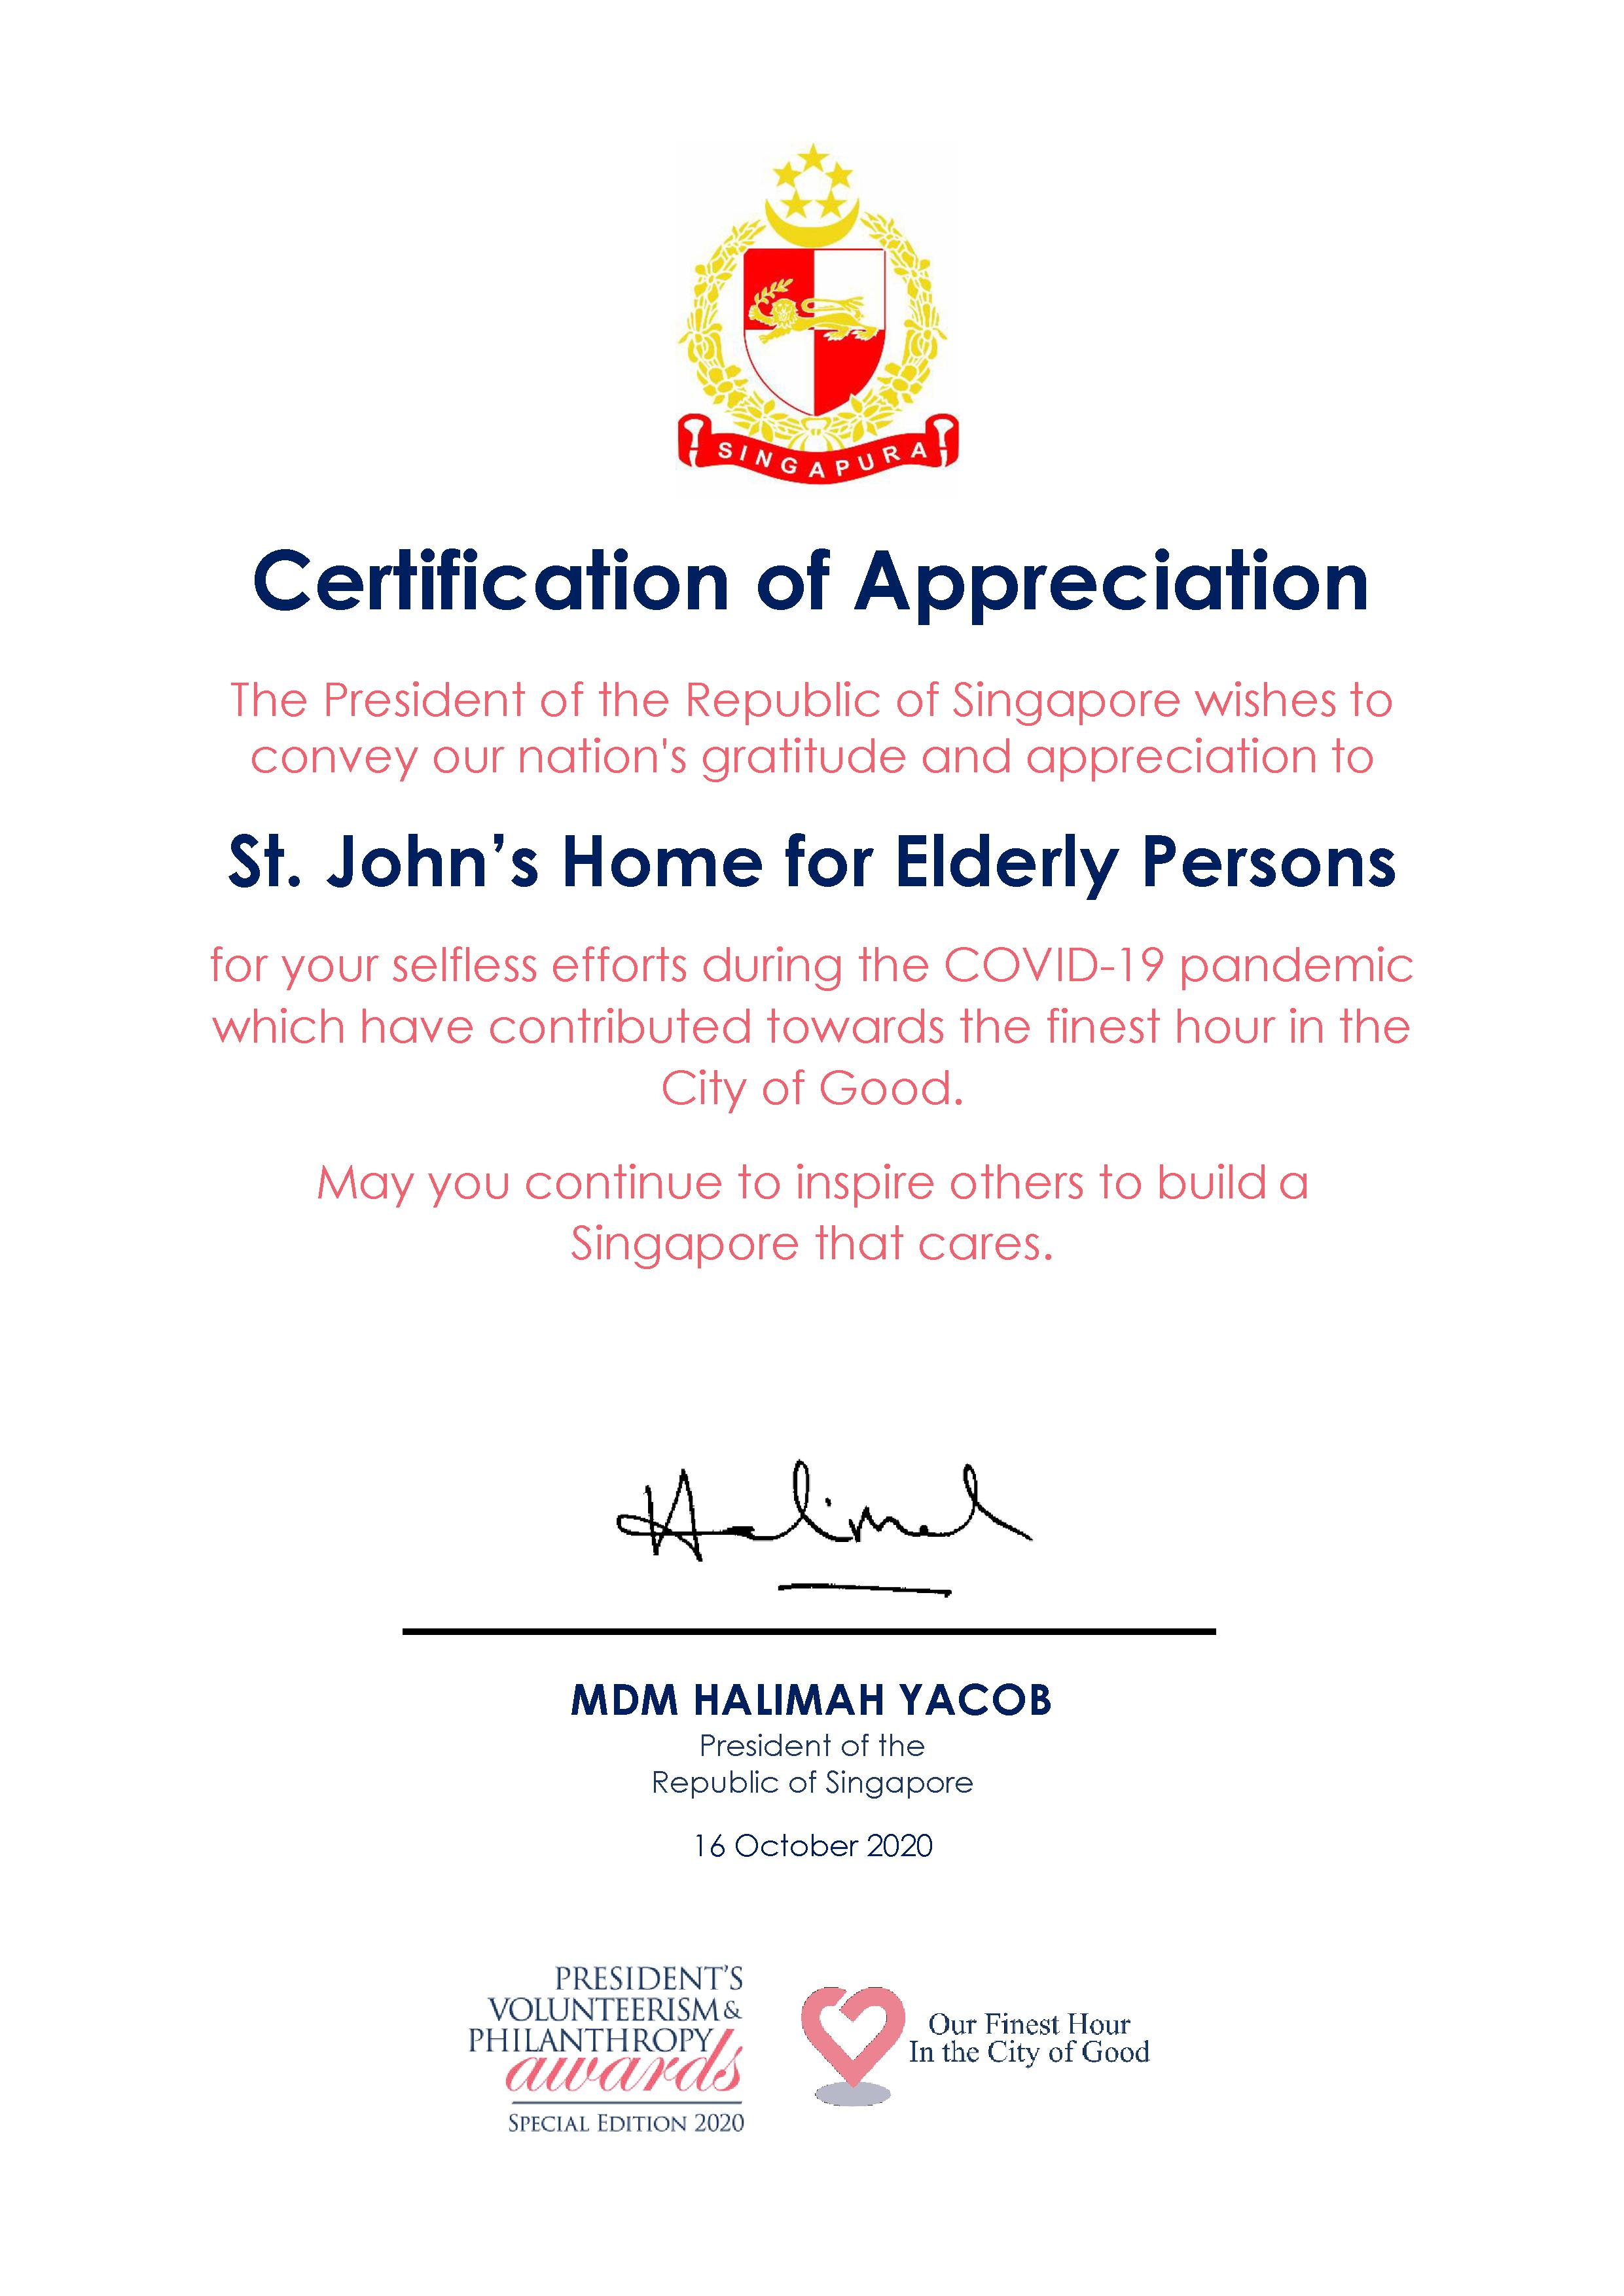 PVPA 2020 Certificate of Appreciation (St. Johns Home for Elderly Persons)